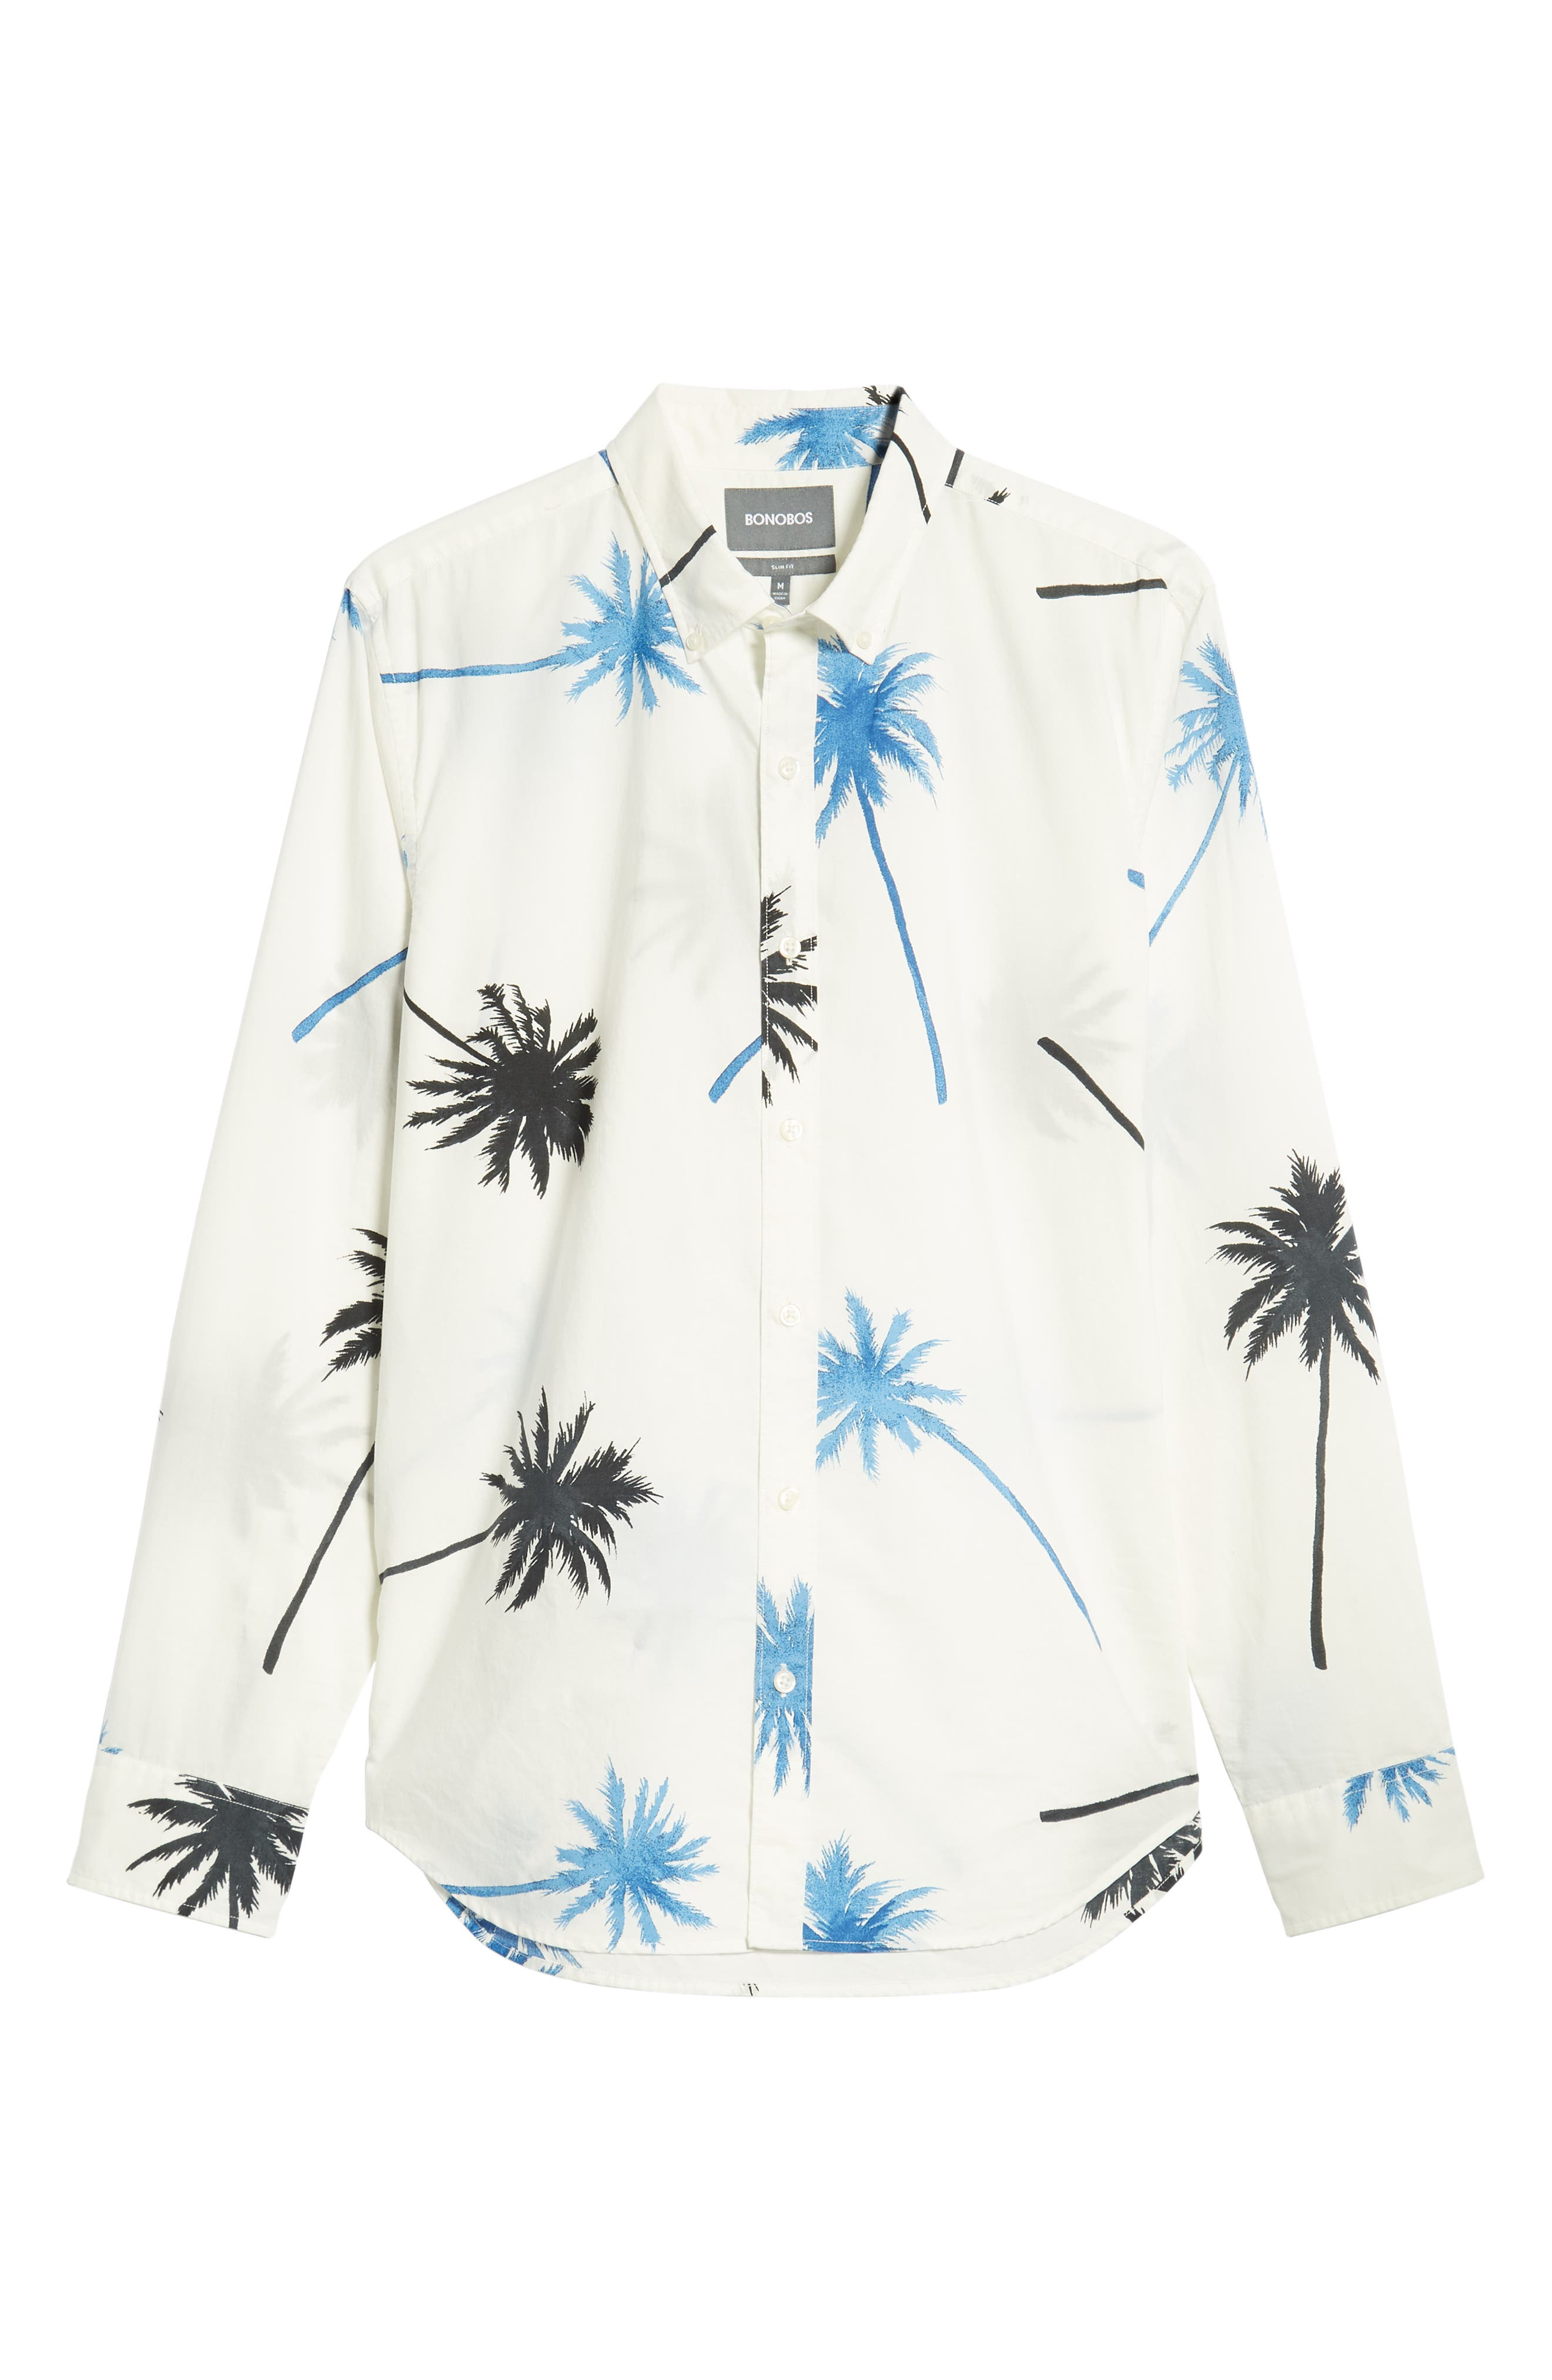 Summerweight Slim Fit Palm Print Sport Shirt,                             Alternate thumbnail 5, color,                             PALM TREE VIEW - GALAXY BLUE